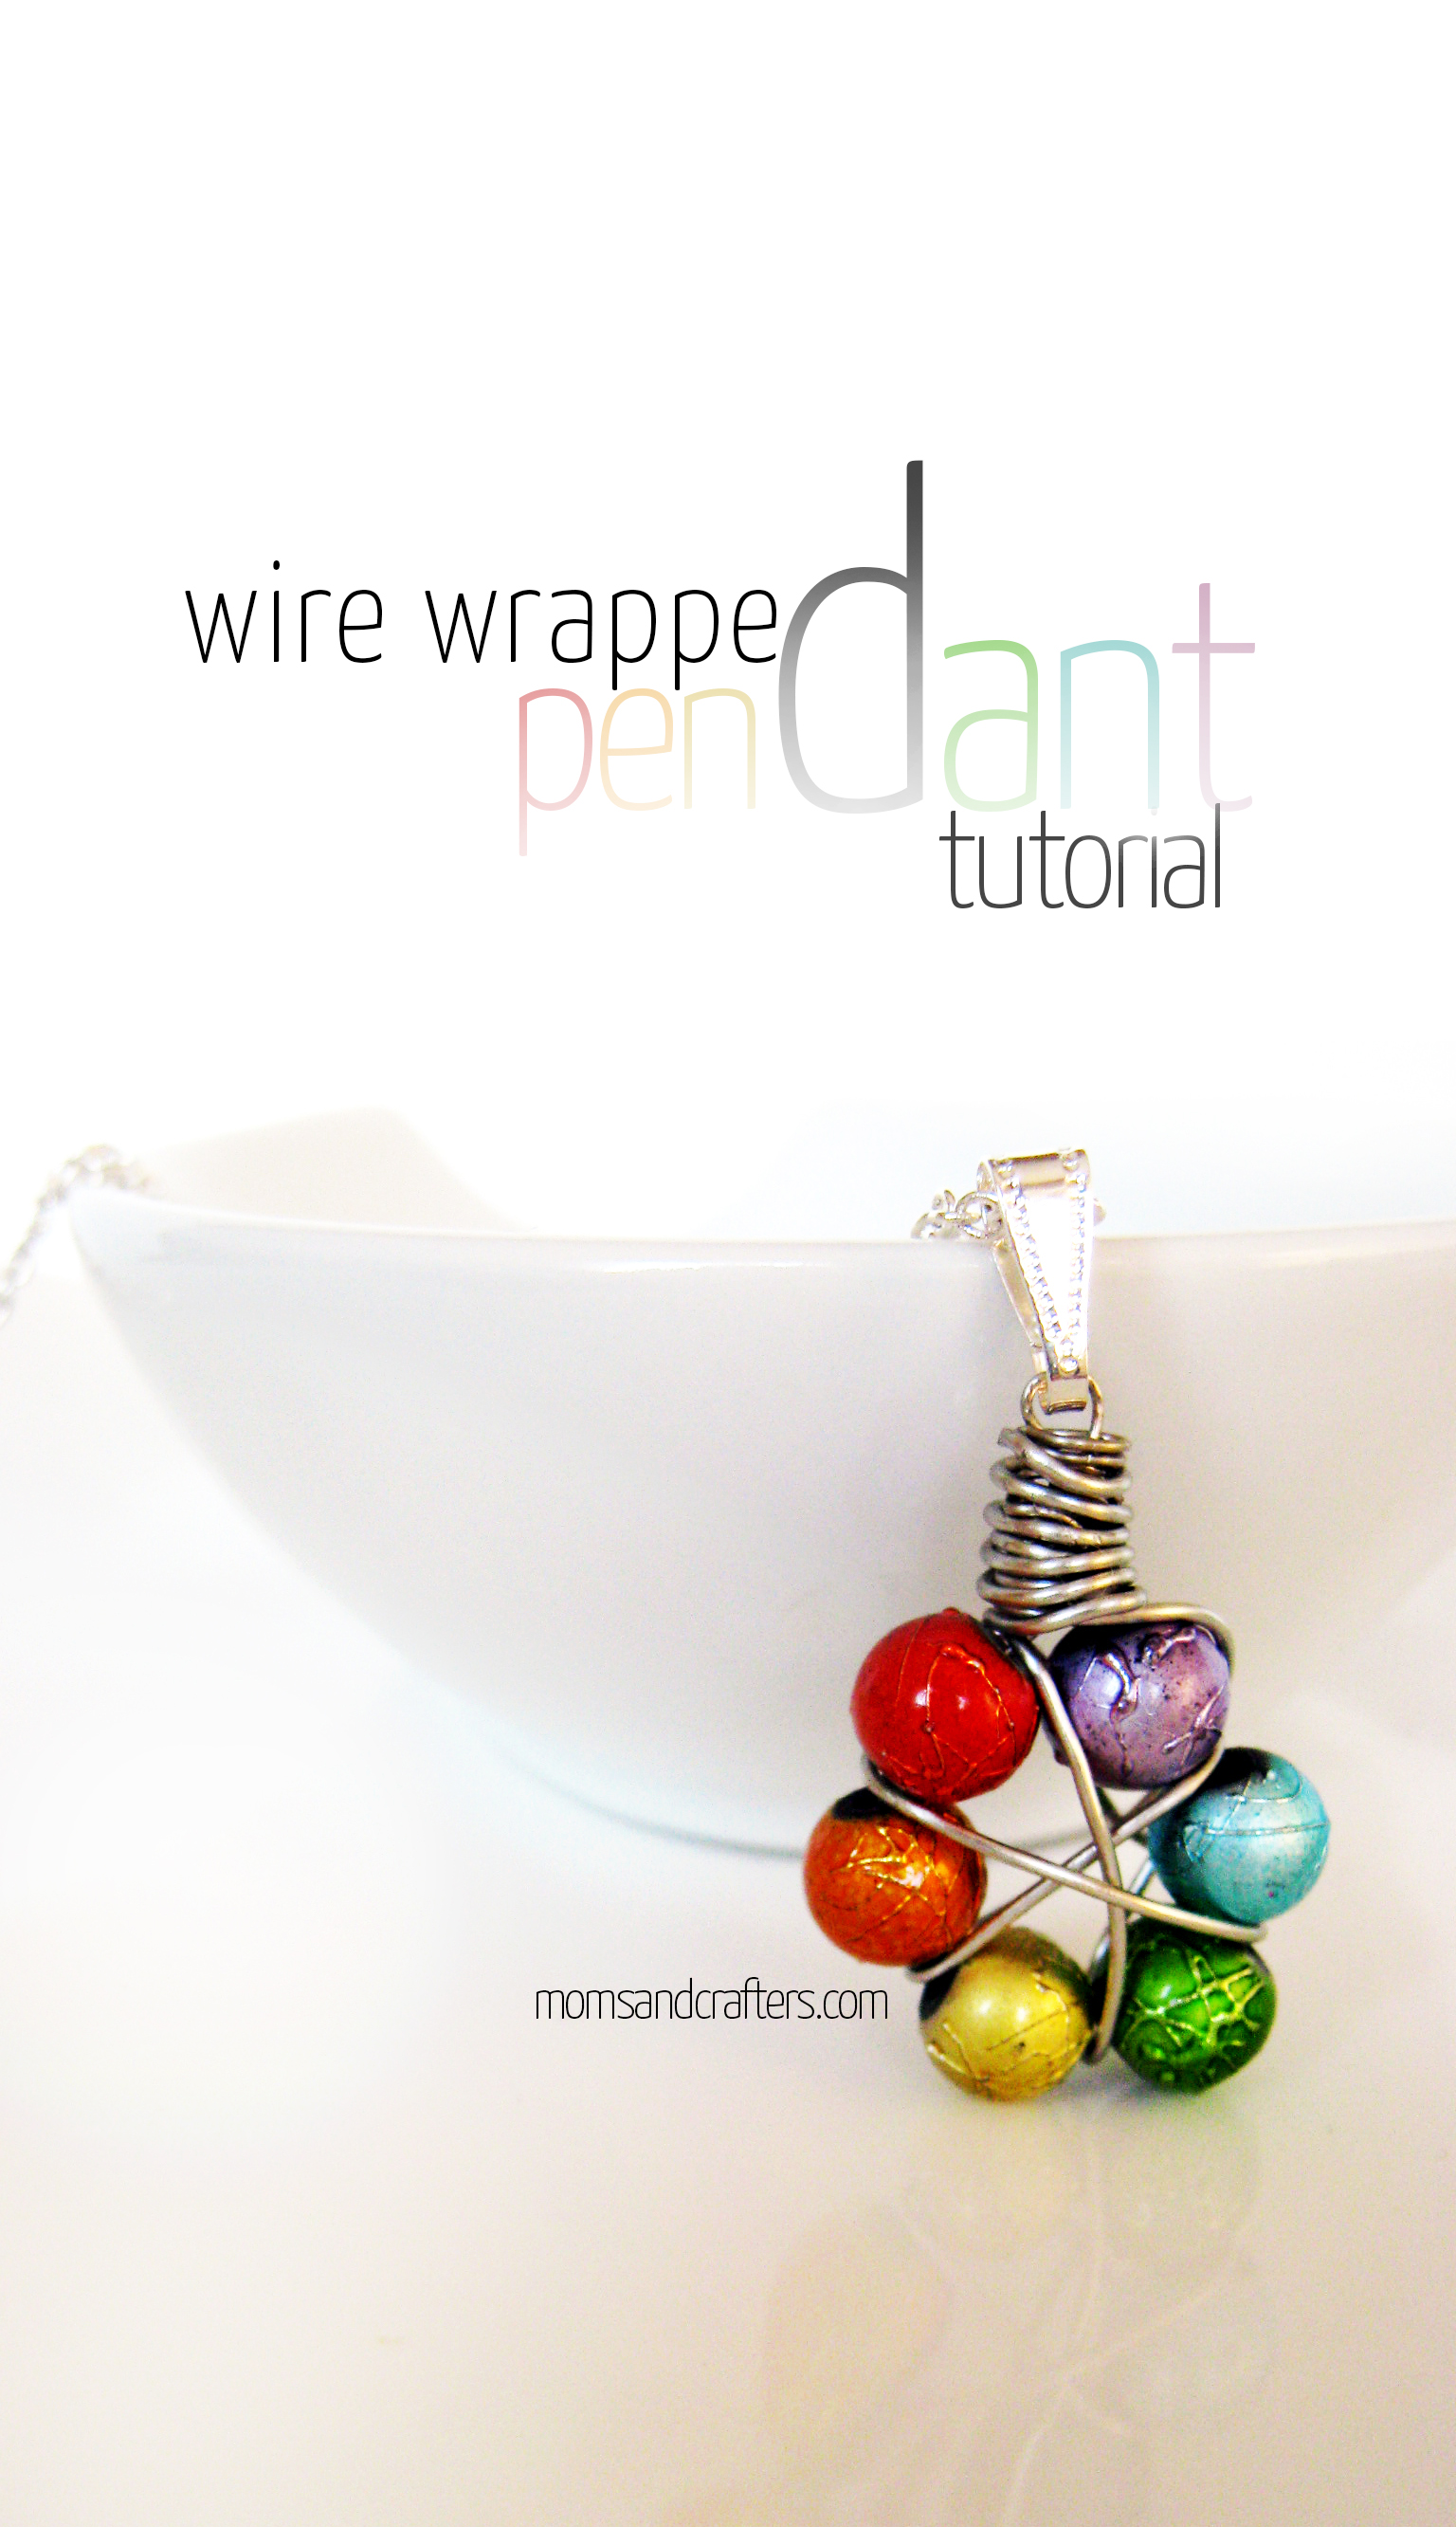 How to Make a Wire Wrapped Pendant - full DIY Tutorial